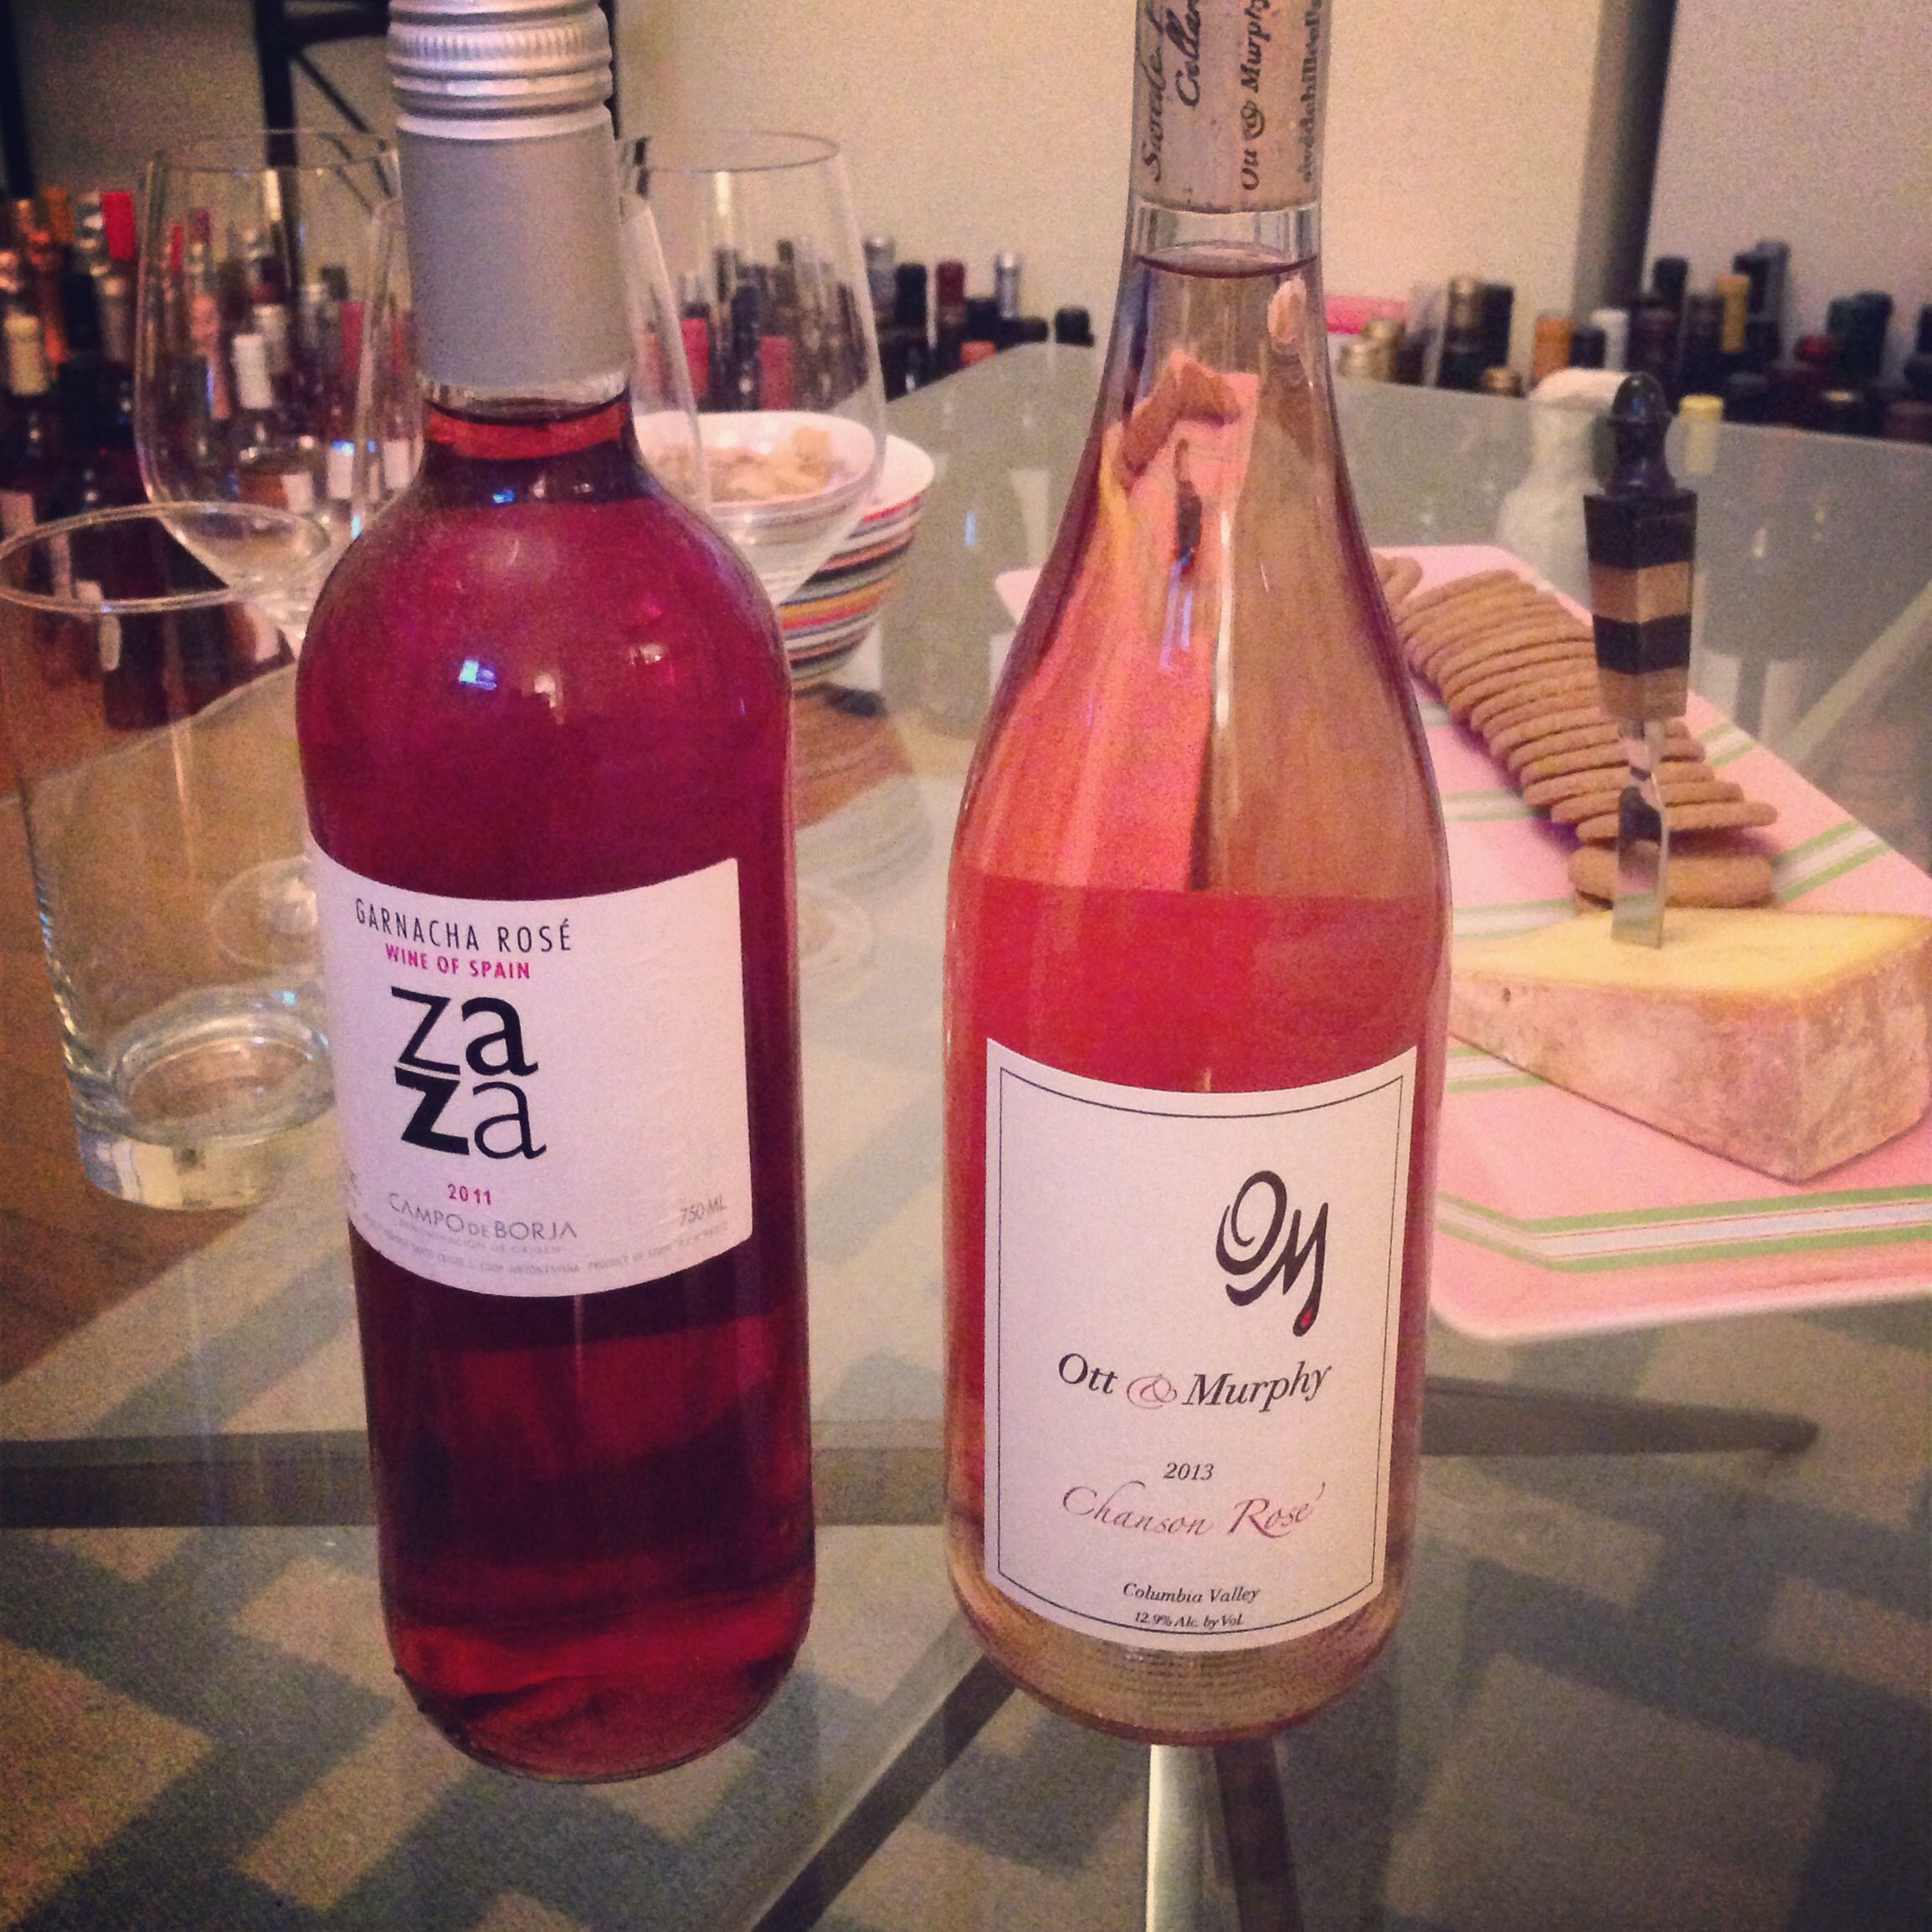 Let The Games Begin Wine From Spain Rose Wine Bottle Wines